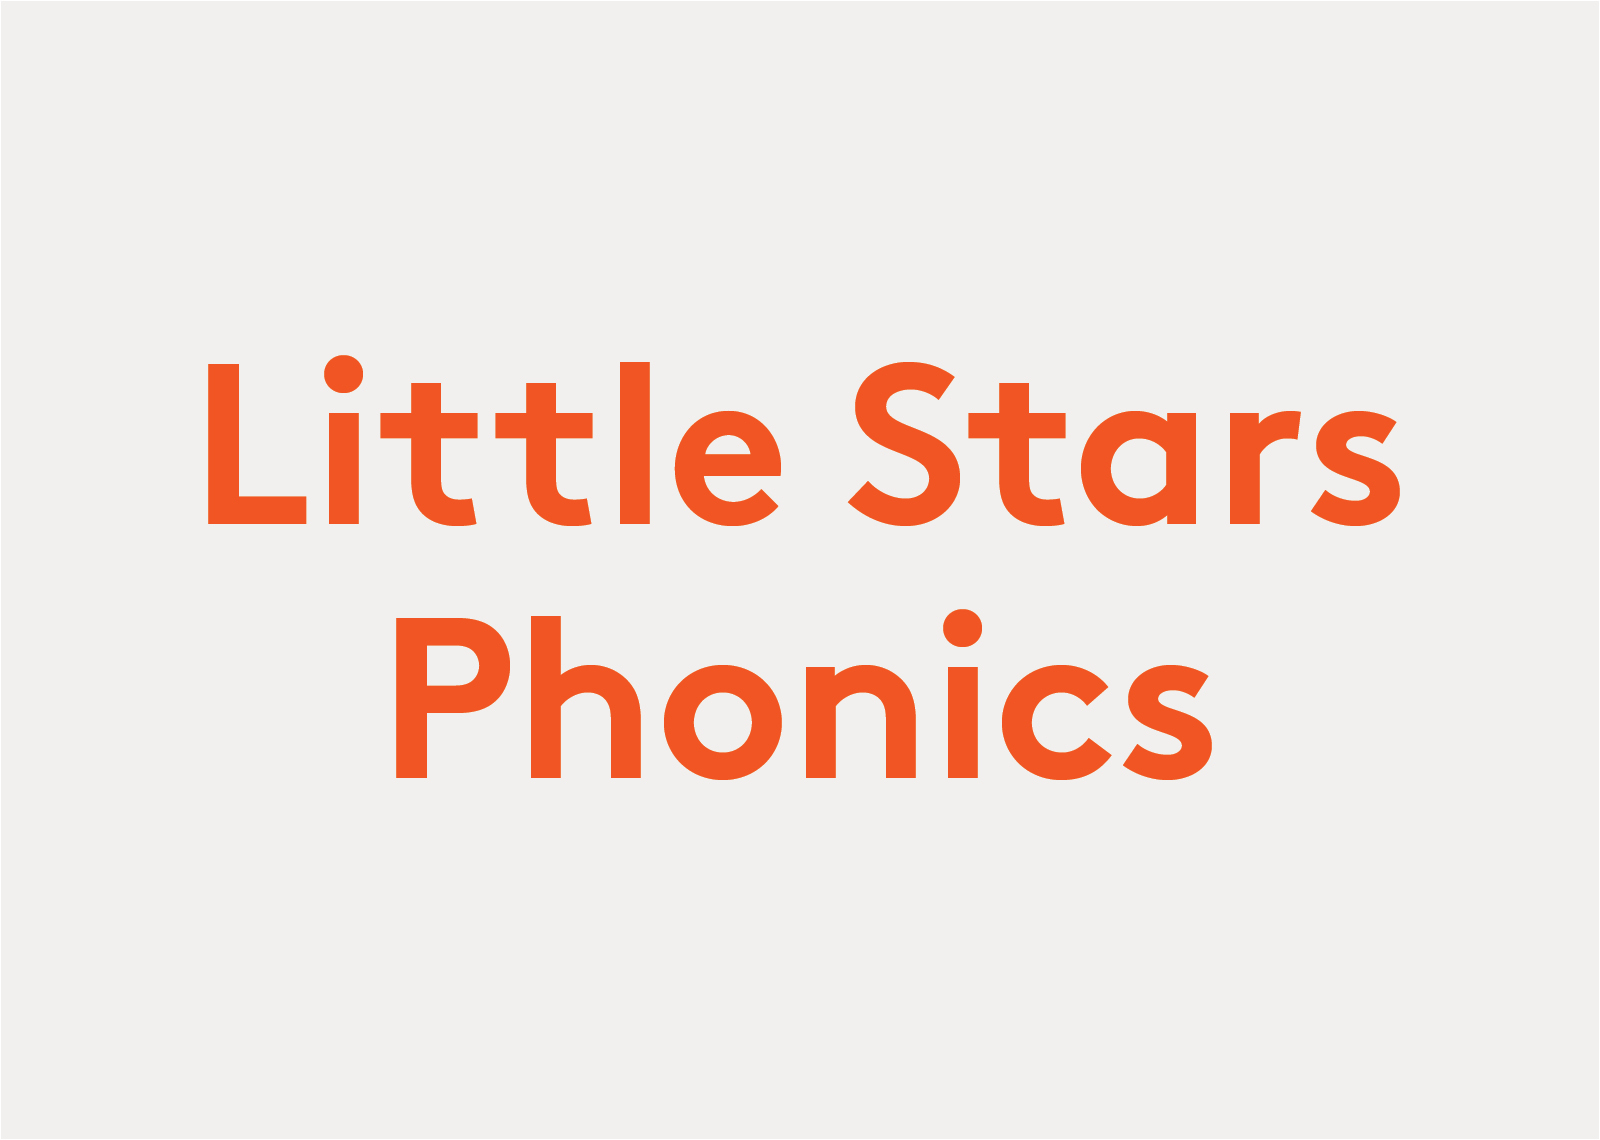 Little Stars Phonics